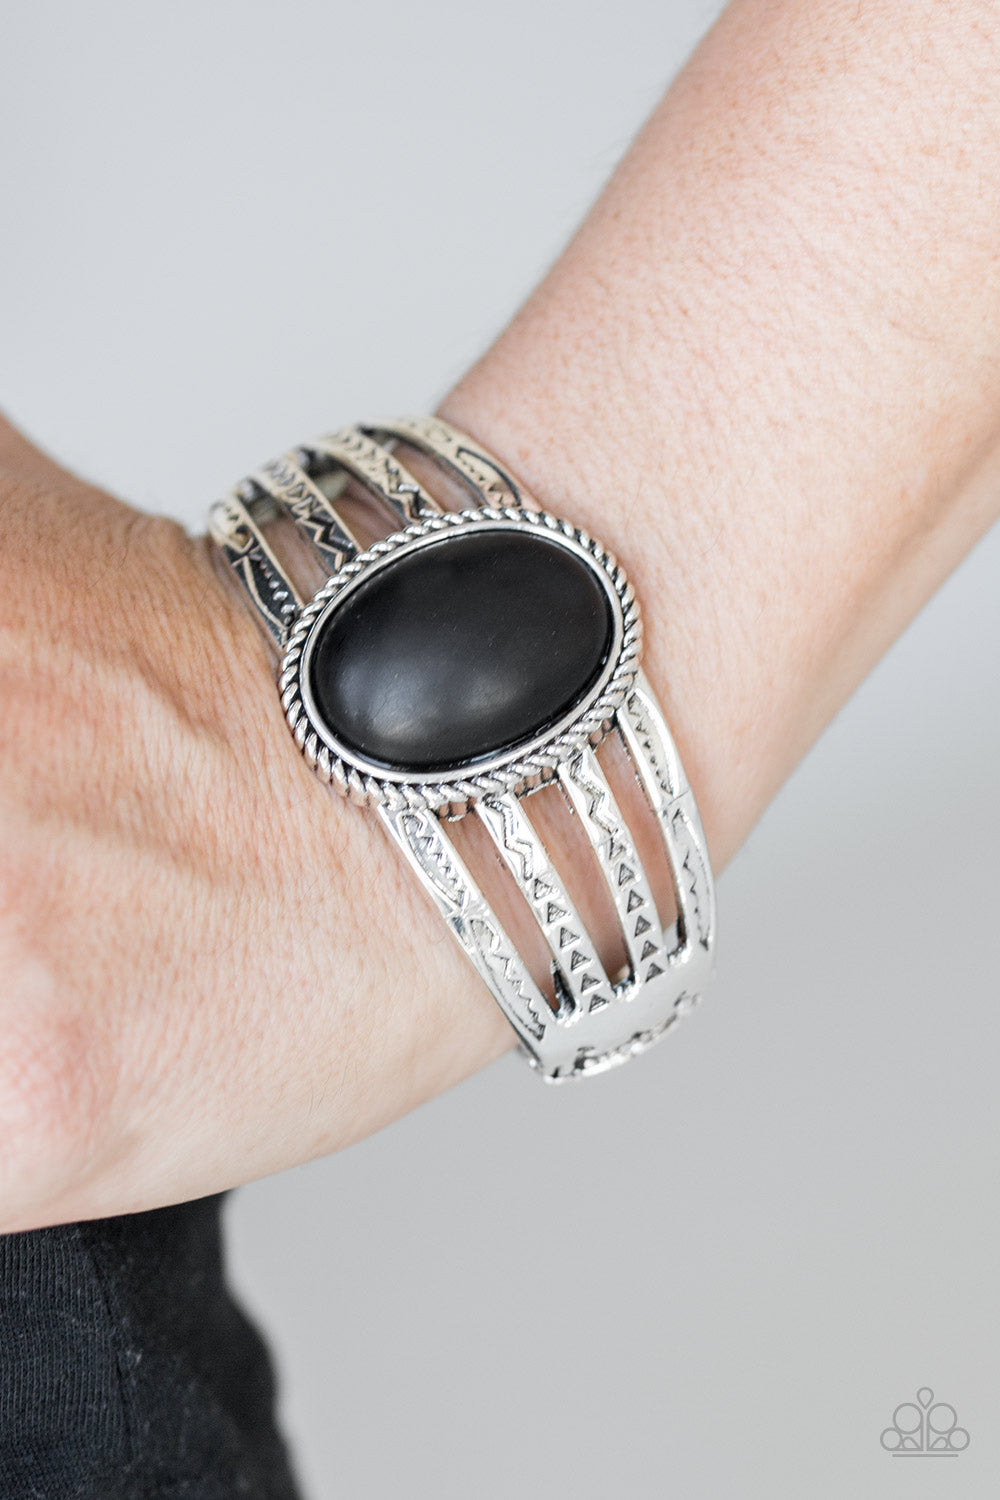 Stamped in tribal glyph-like patterns, glistening silver bars arc across the wrist, coalescing into a bold cuff-like bracelet. An earthy black stone is pressed into the center of the piece for a seasonal finish. Features a hinged closure.  Sold as one individual bracelet.  Always nickel and lead free.